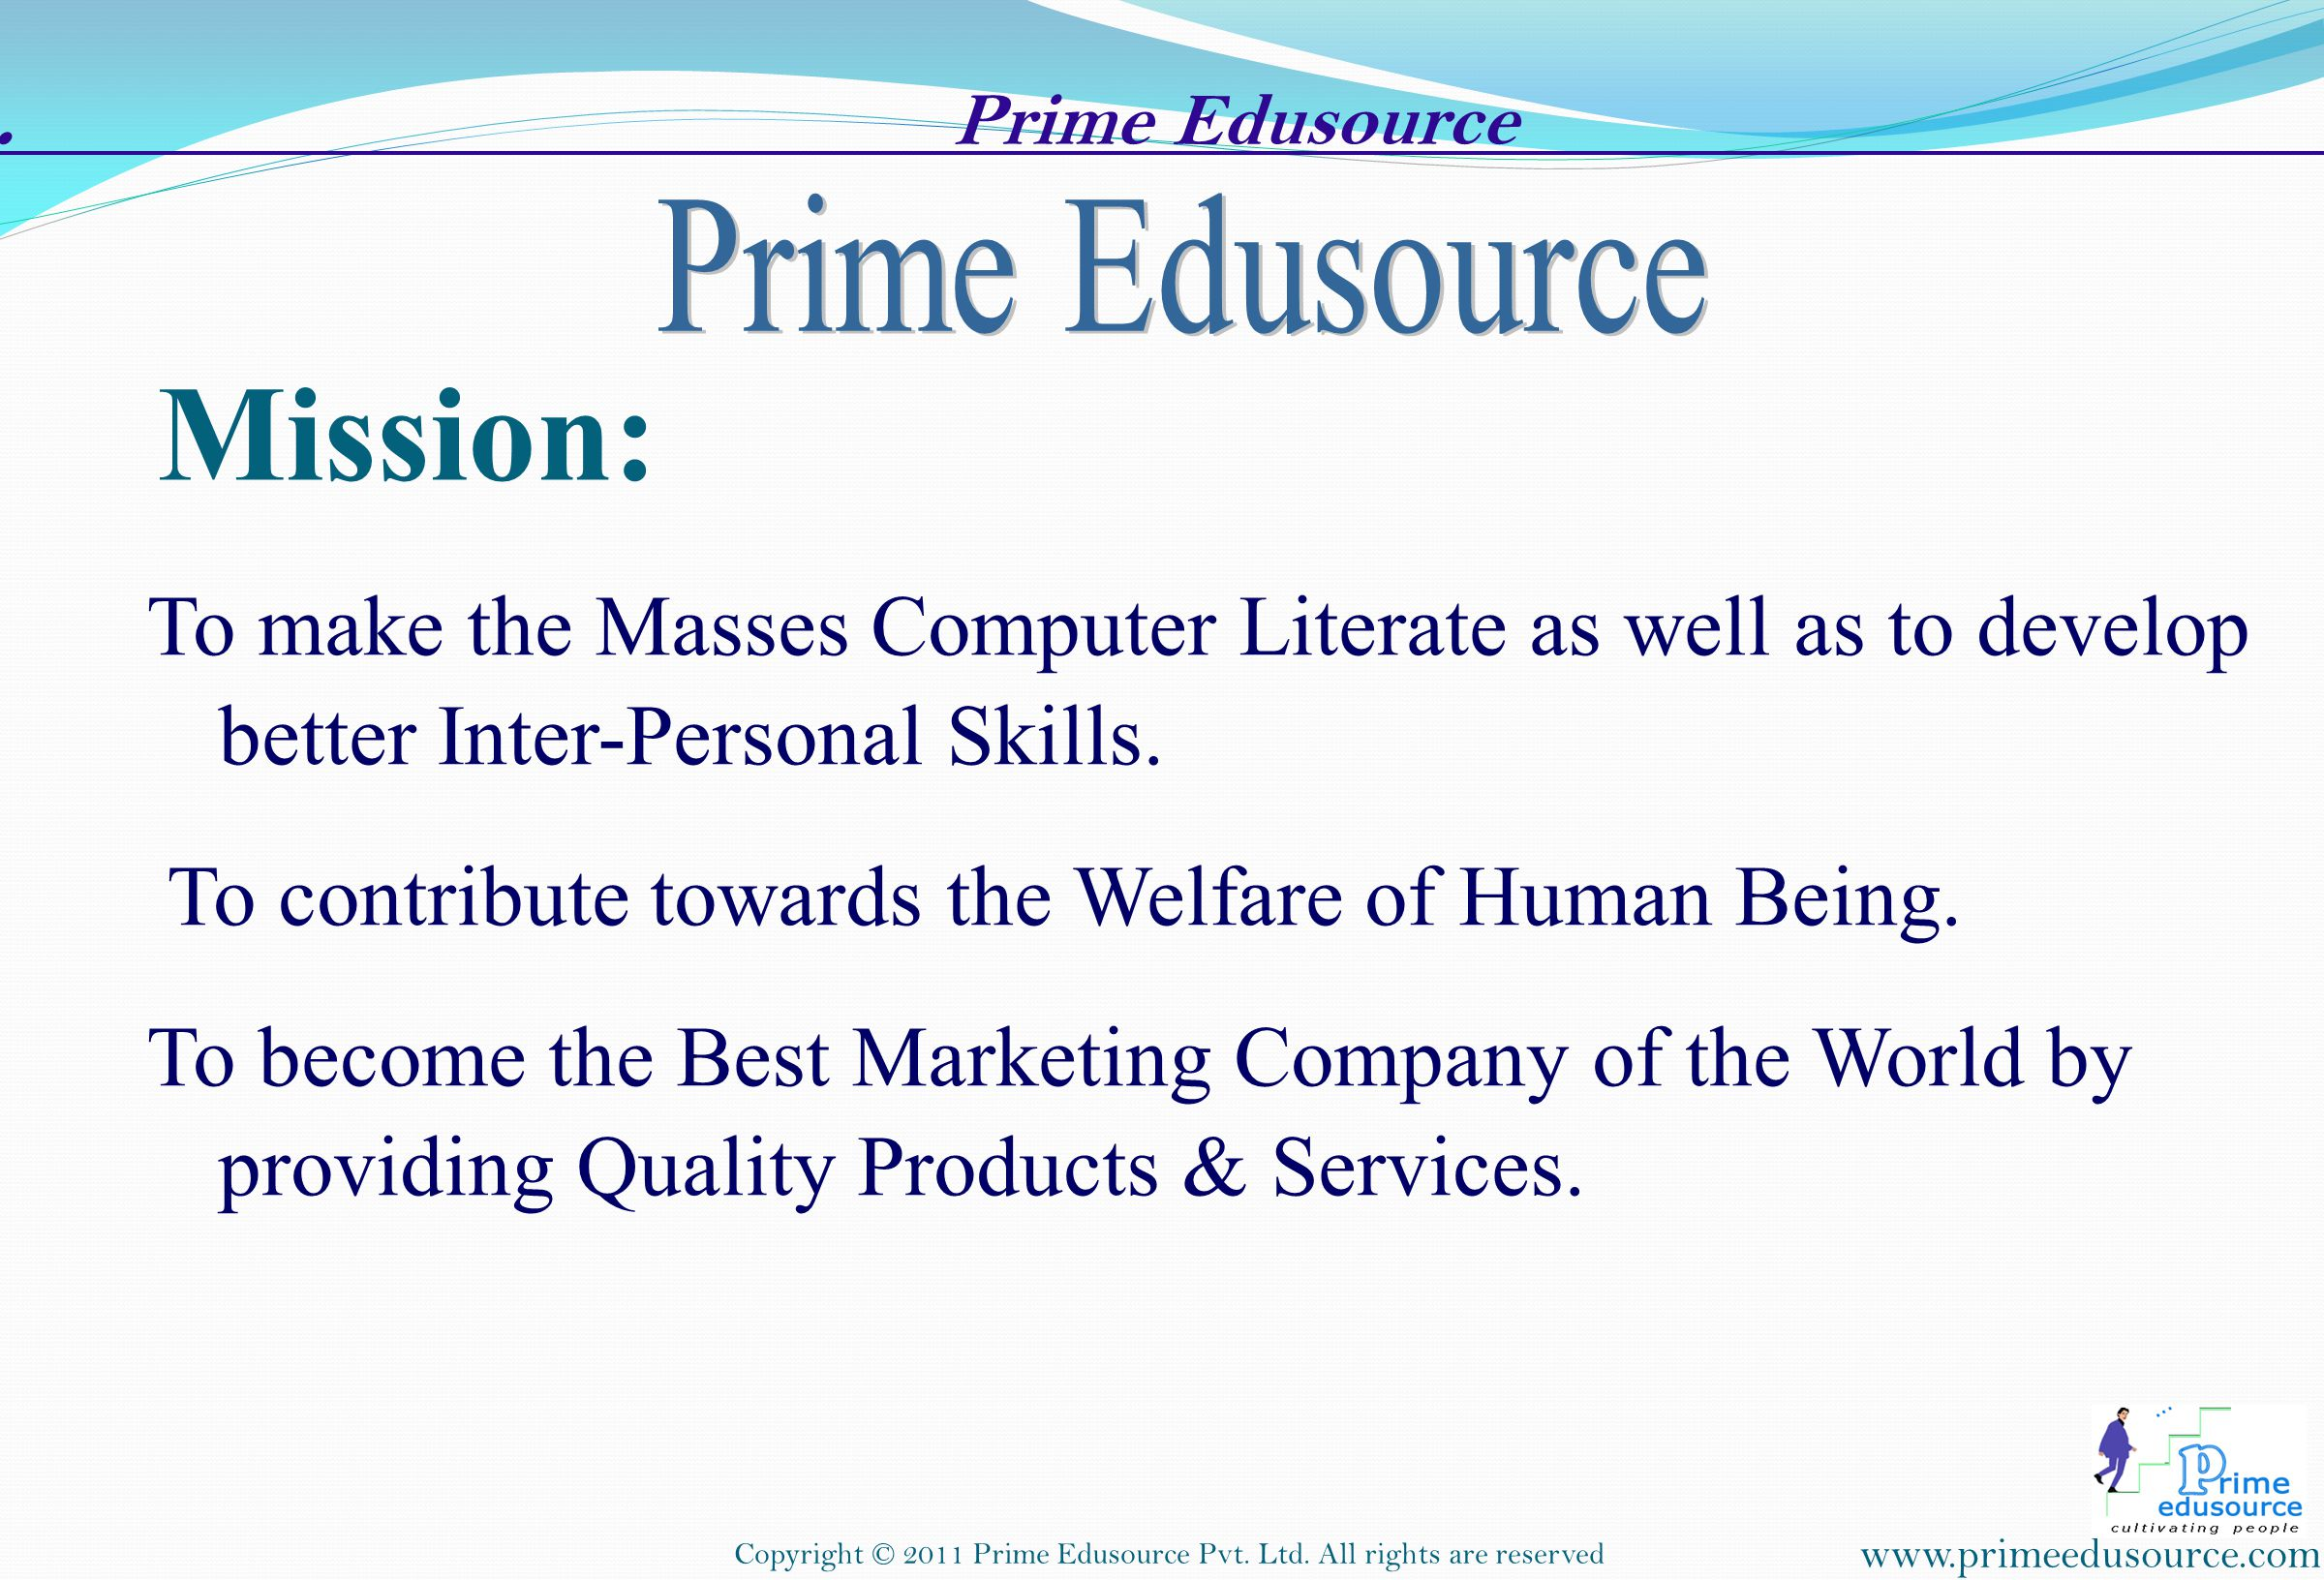 To make the Masses Computer Literate as well as to develop better Inter-Personal Skills.